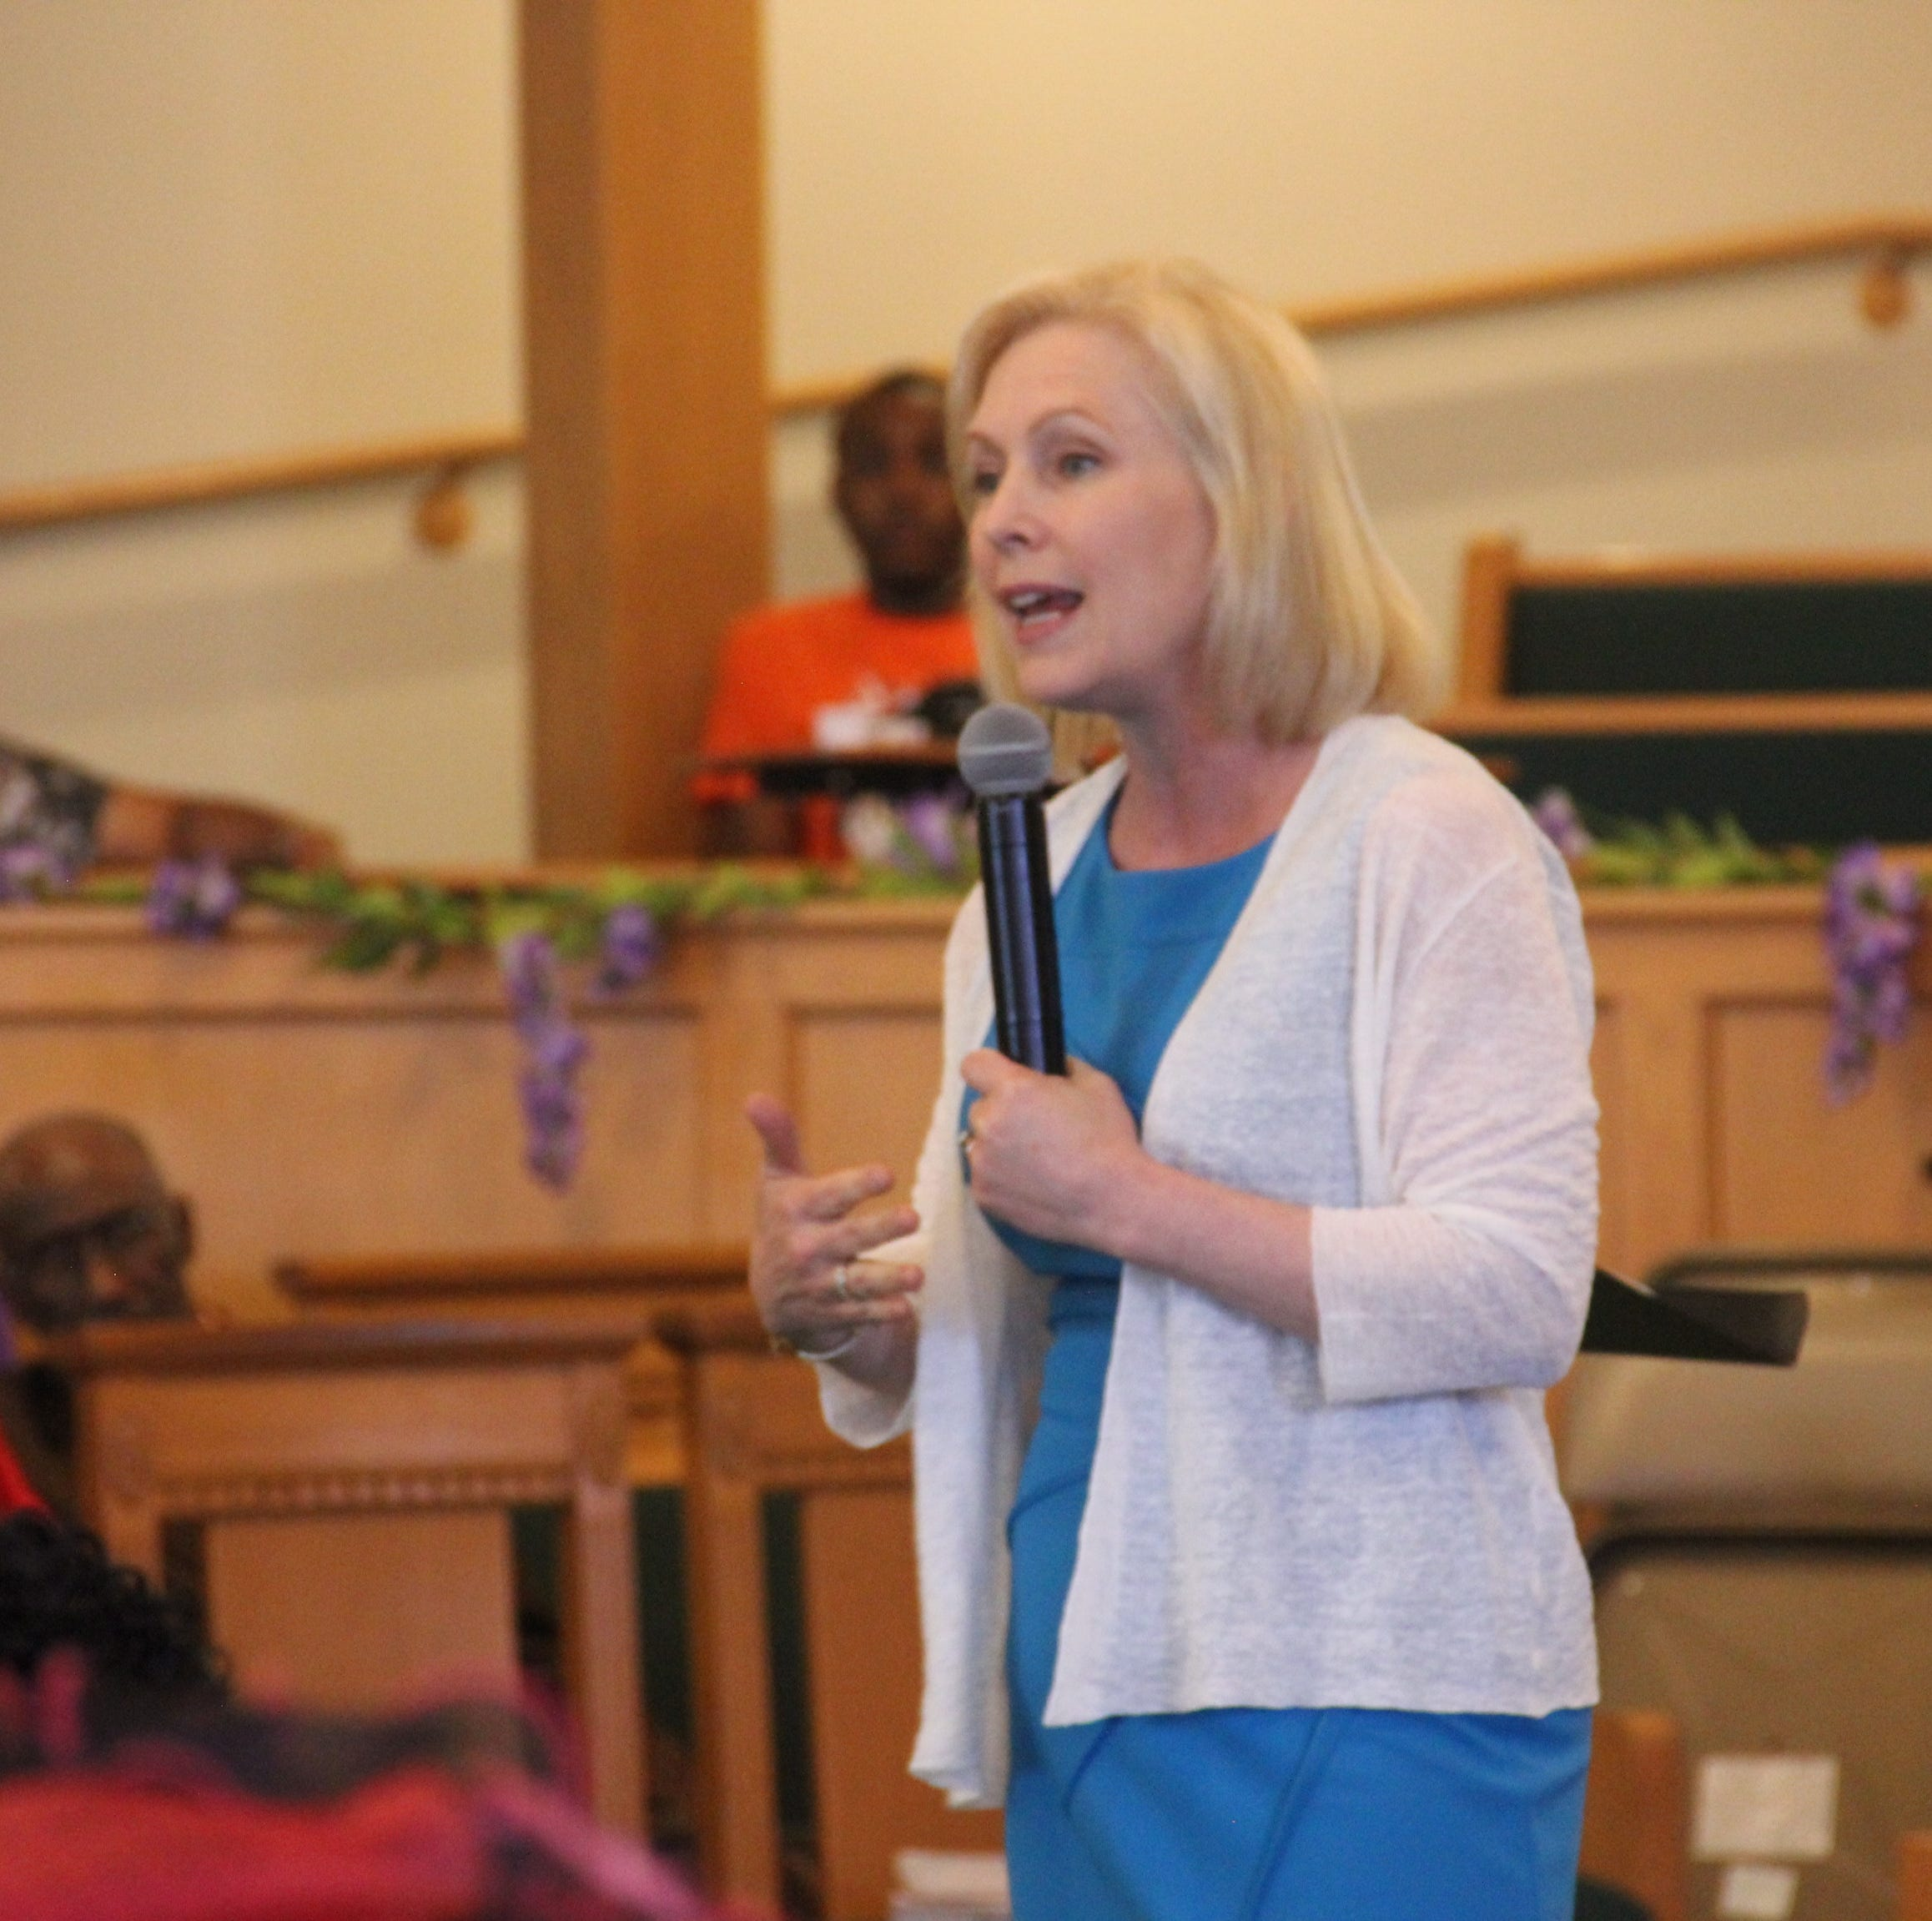 Kirsten Gillibrand at Iowa Baptist church preaches that Trump is 'contrary to the gospel'